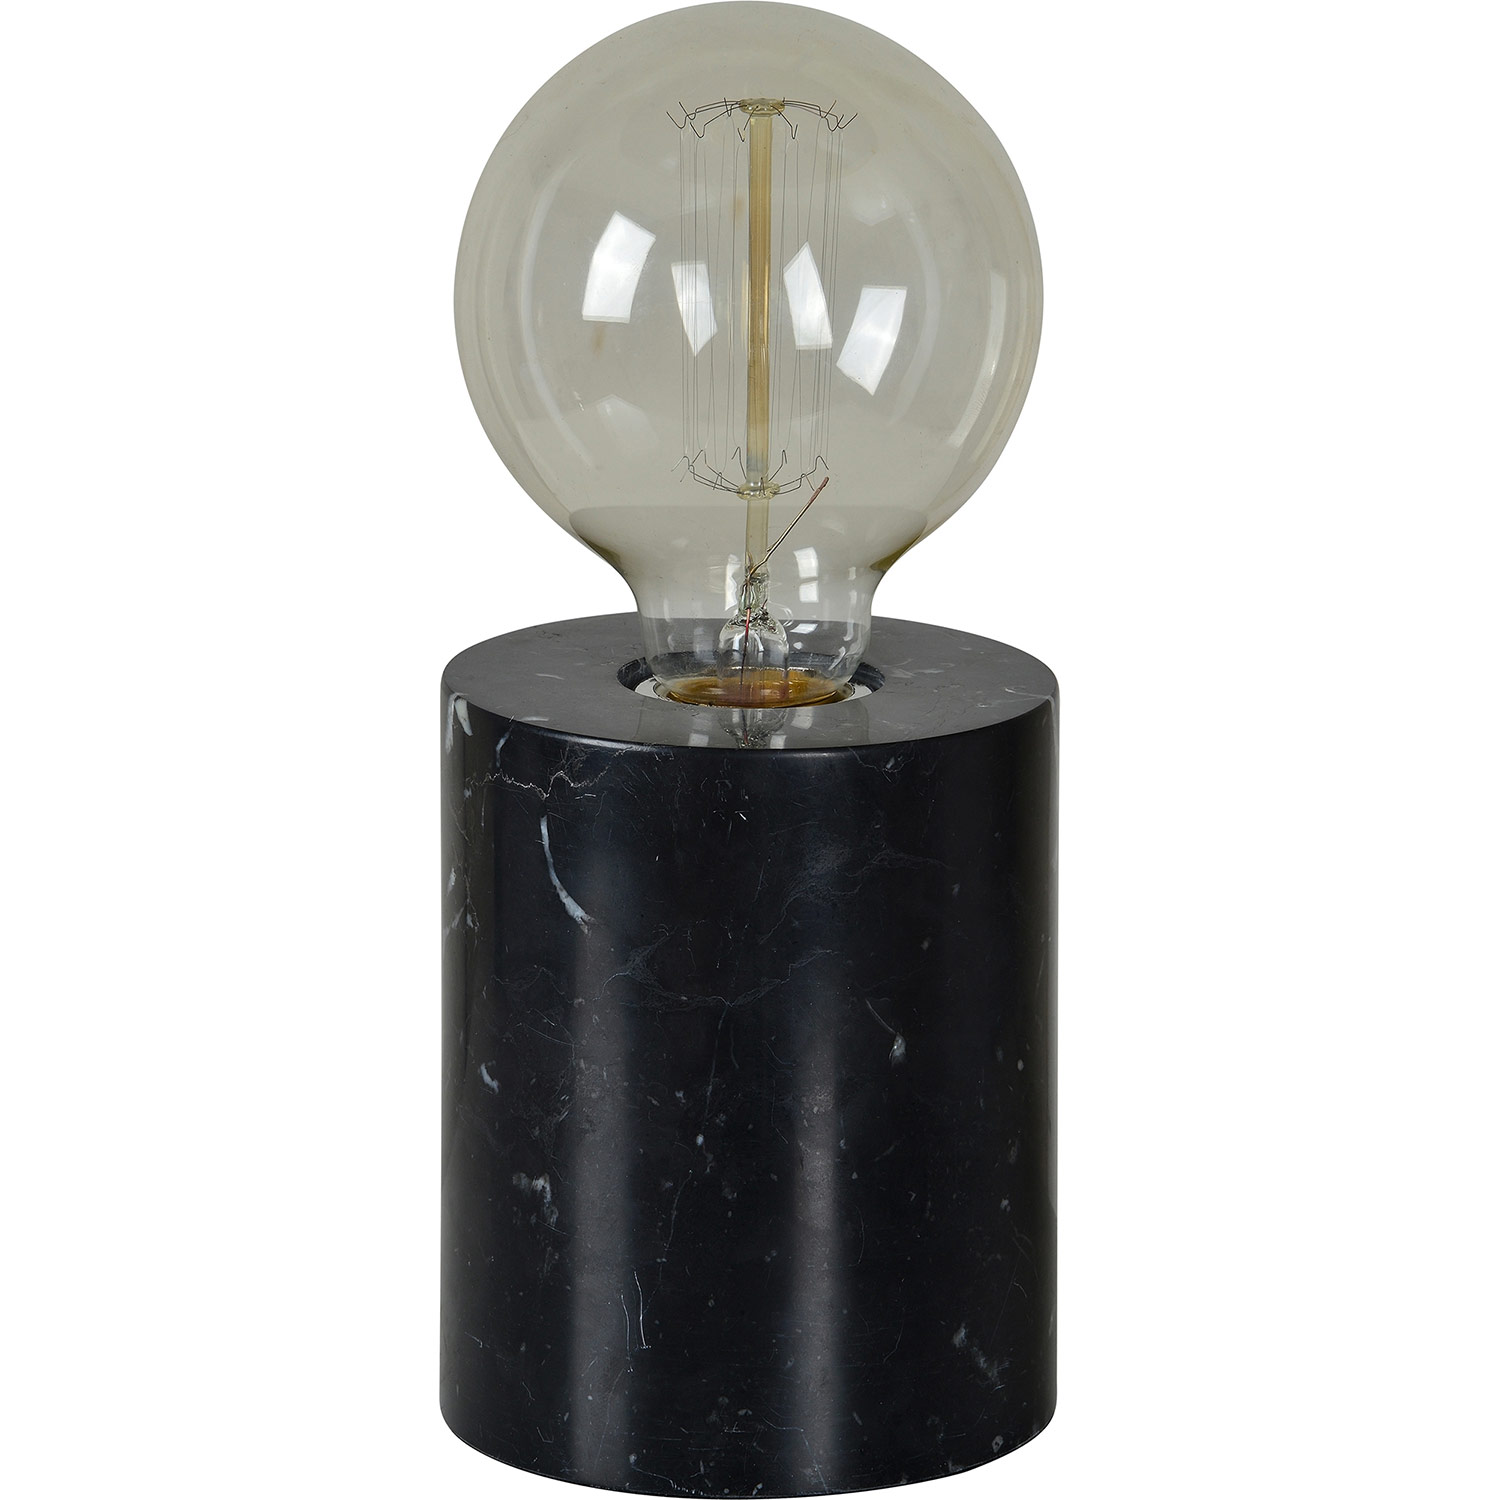 Ren-Wil Chancey Table Lamp - Black